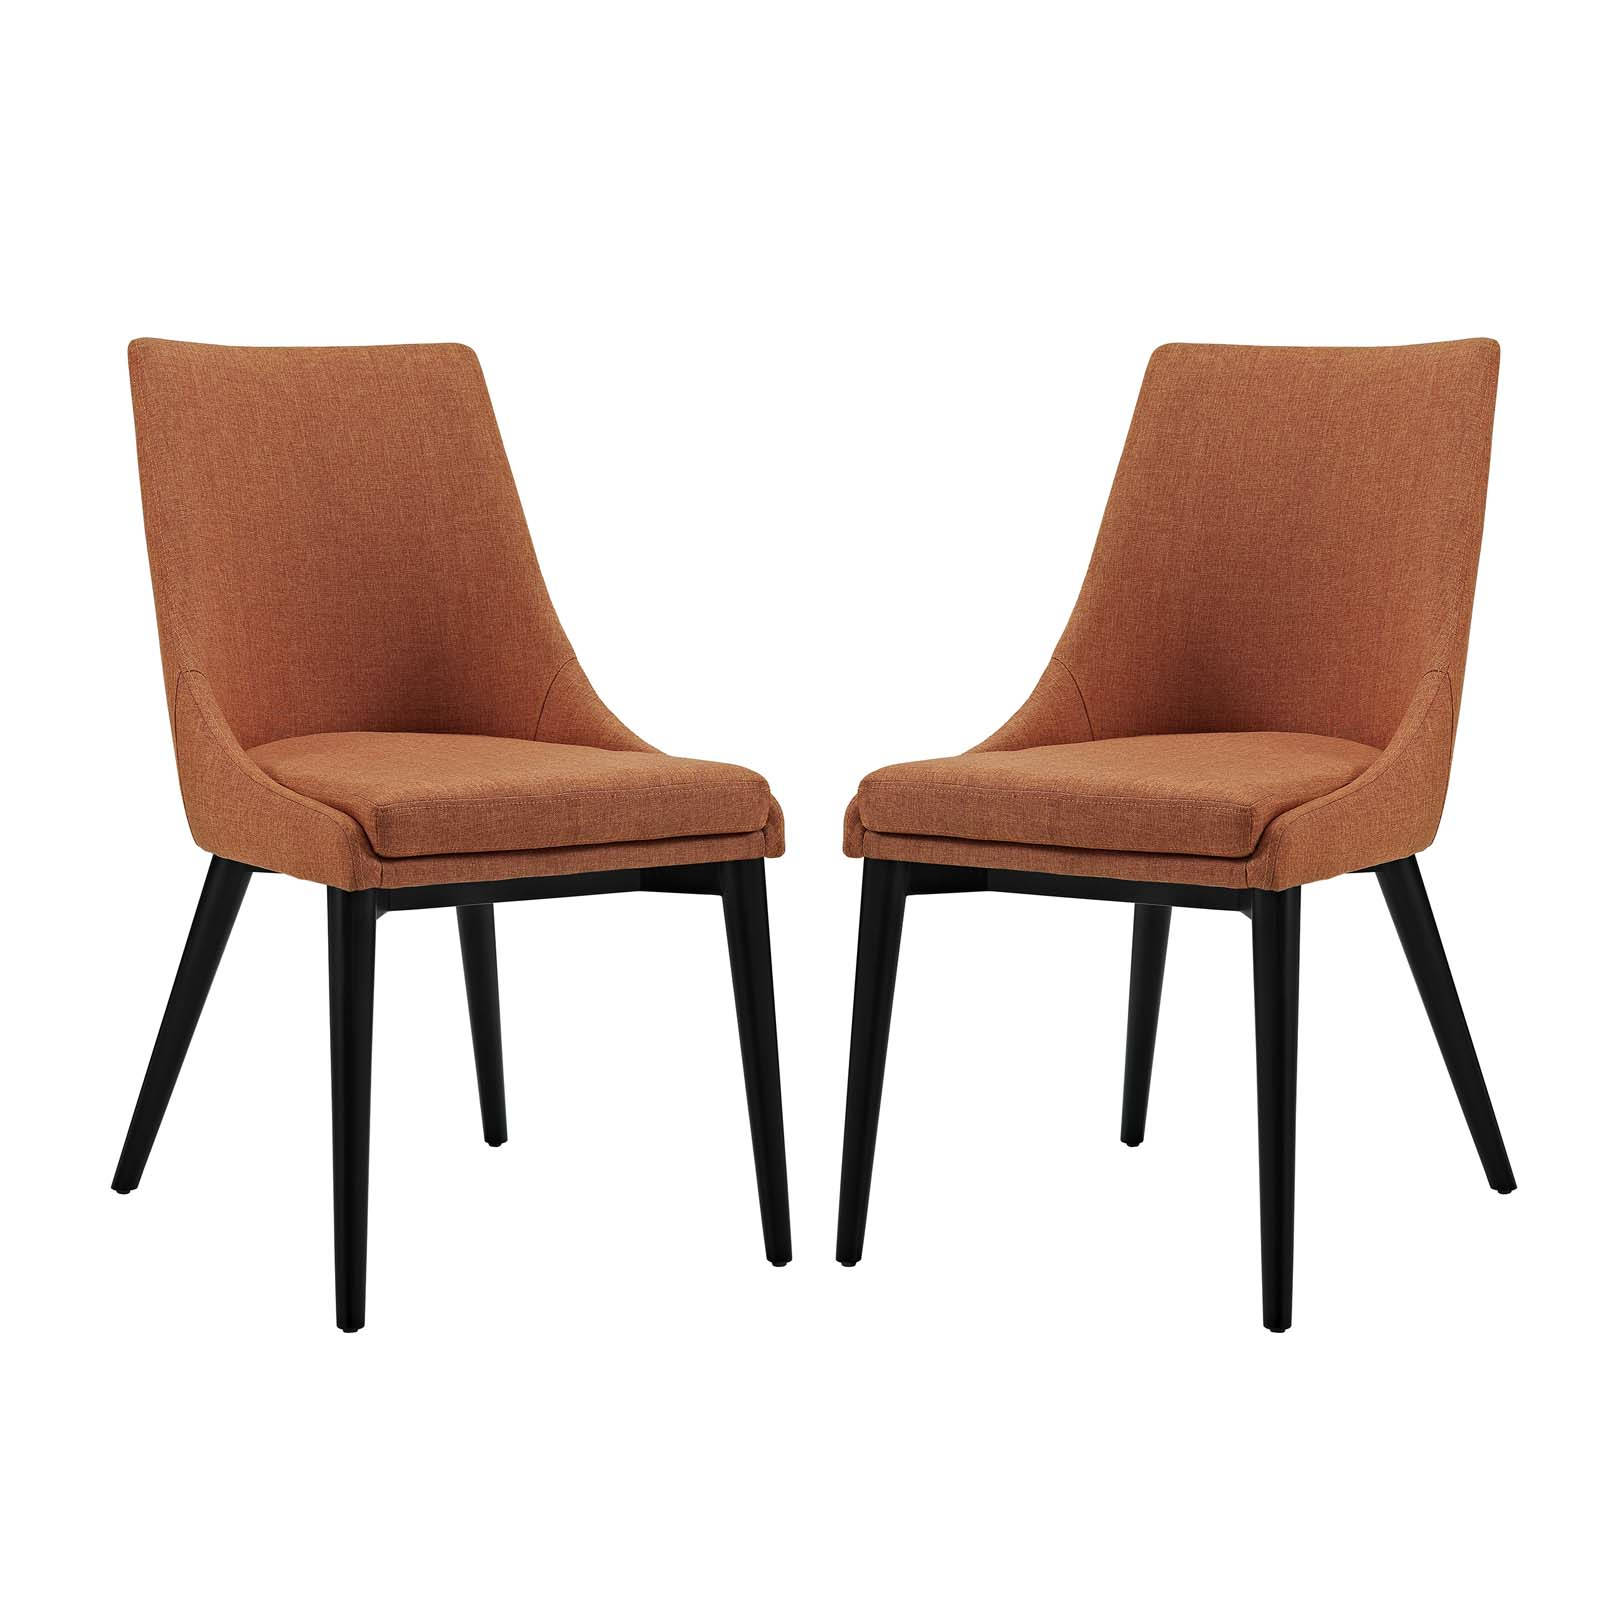 Orange Fabric Dining Side Chairs To Enlarge